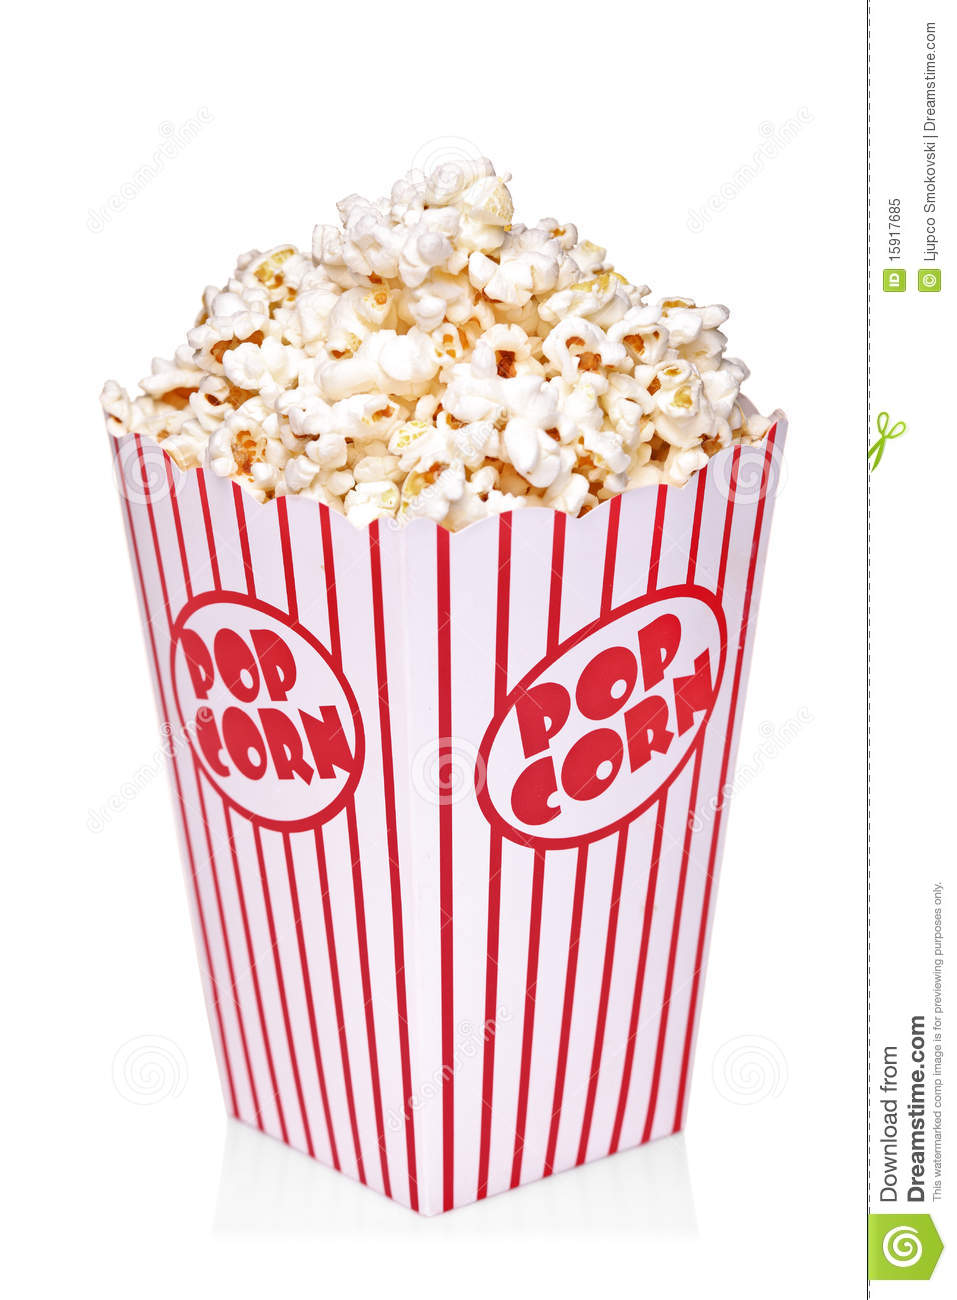 classic box of red and white popcorn box royalty free Loaf of Bread Clip Art Loaf of Bread Clip Art